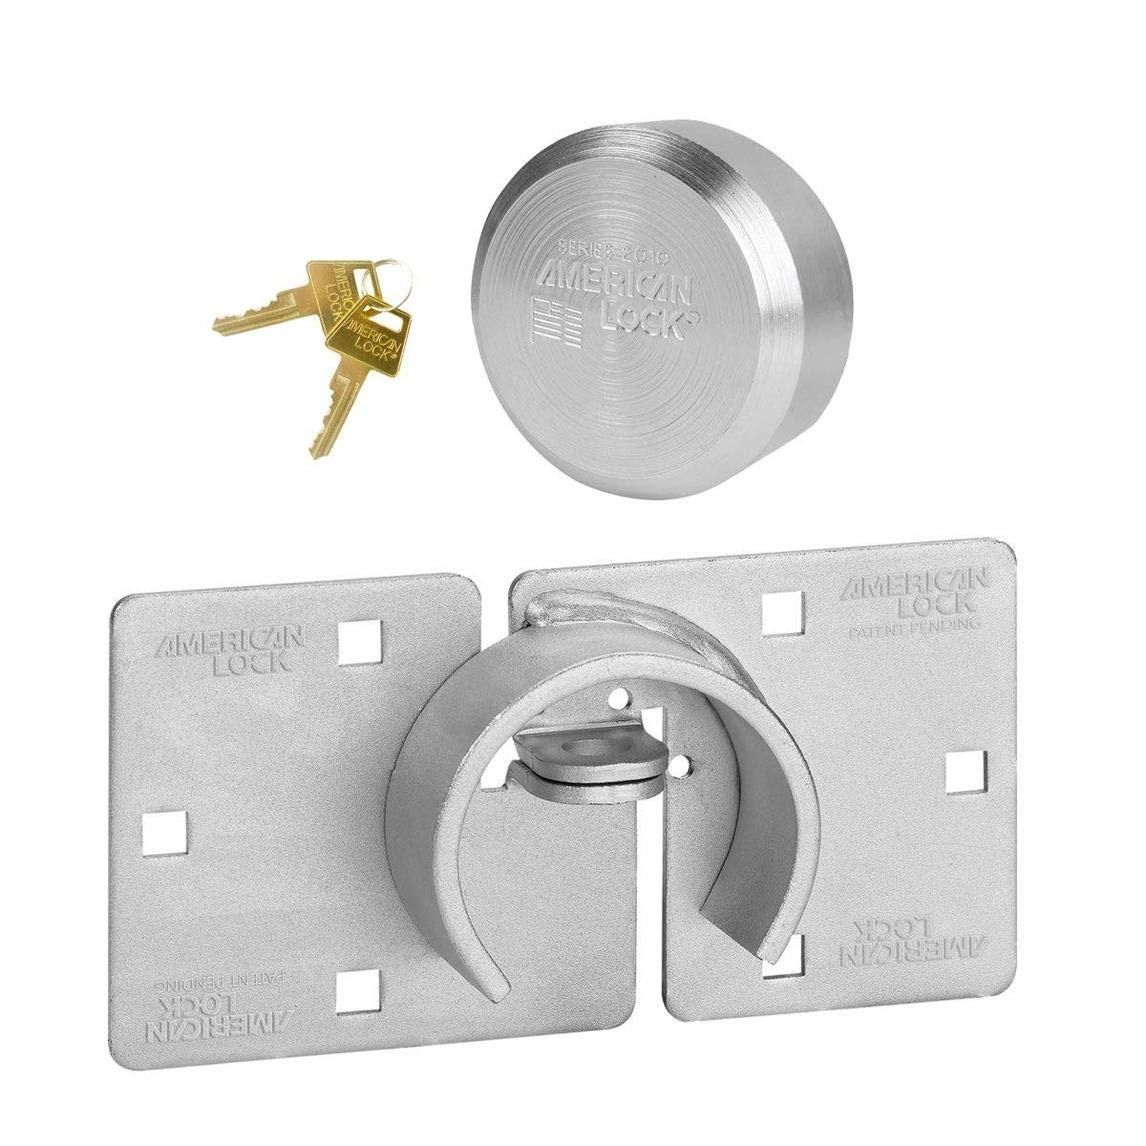 American / Master Lock (1) Hidden Shackle and Hasp Combo A801 - A2010NKA w/ Bumpstop Technology